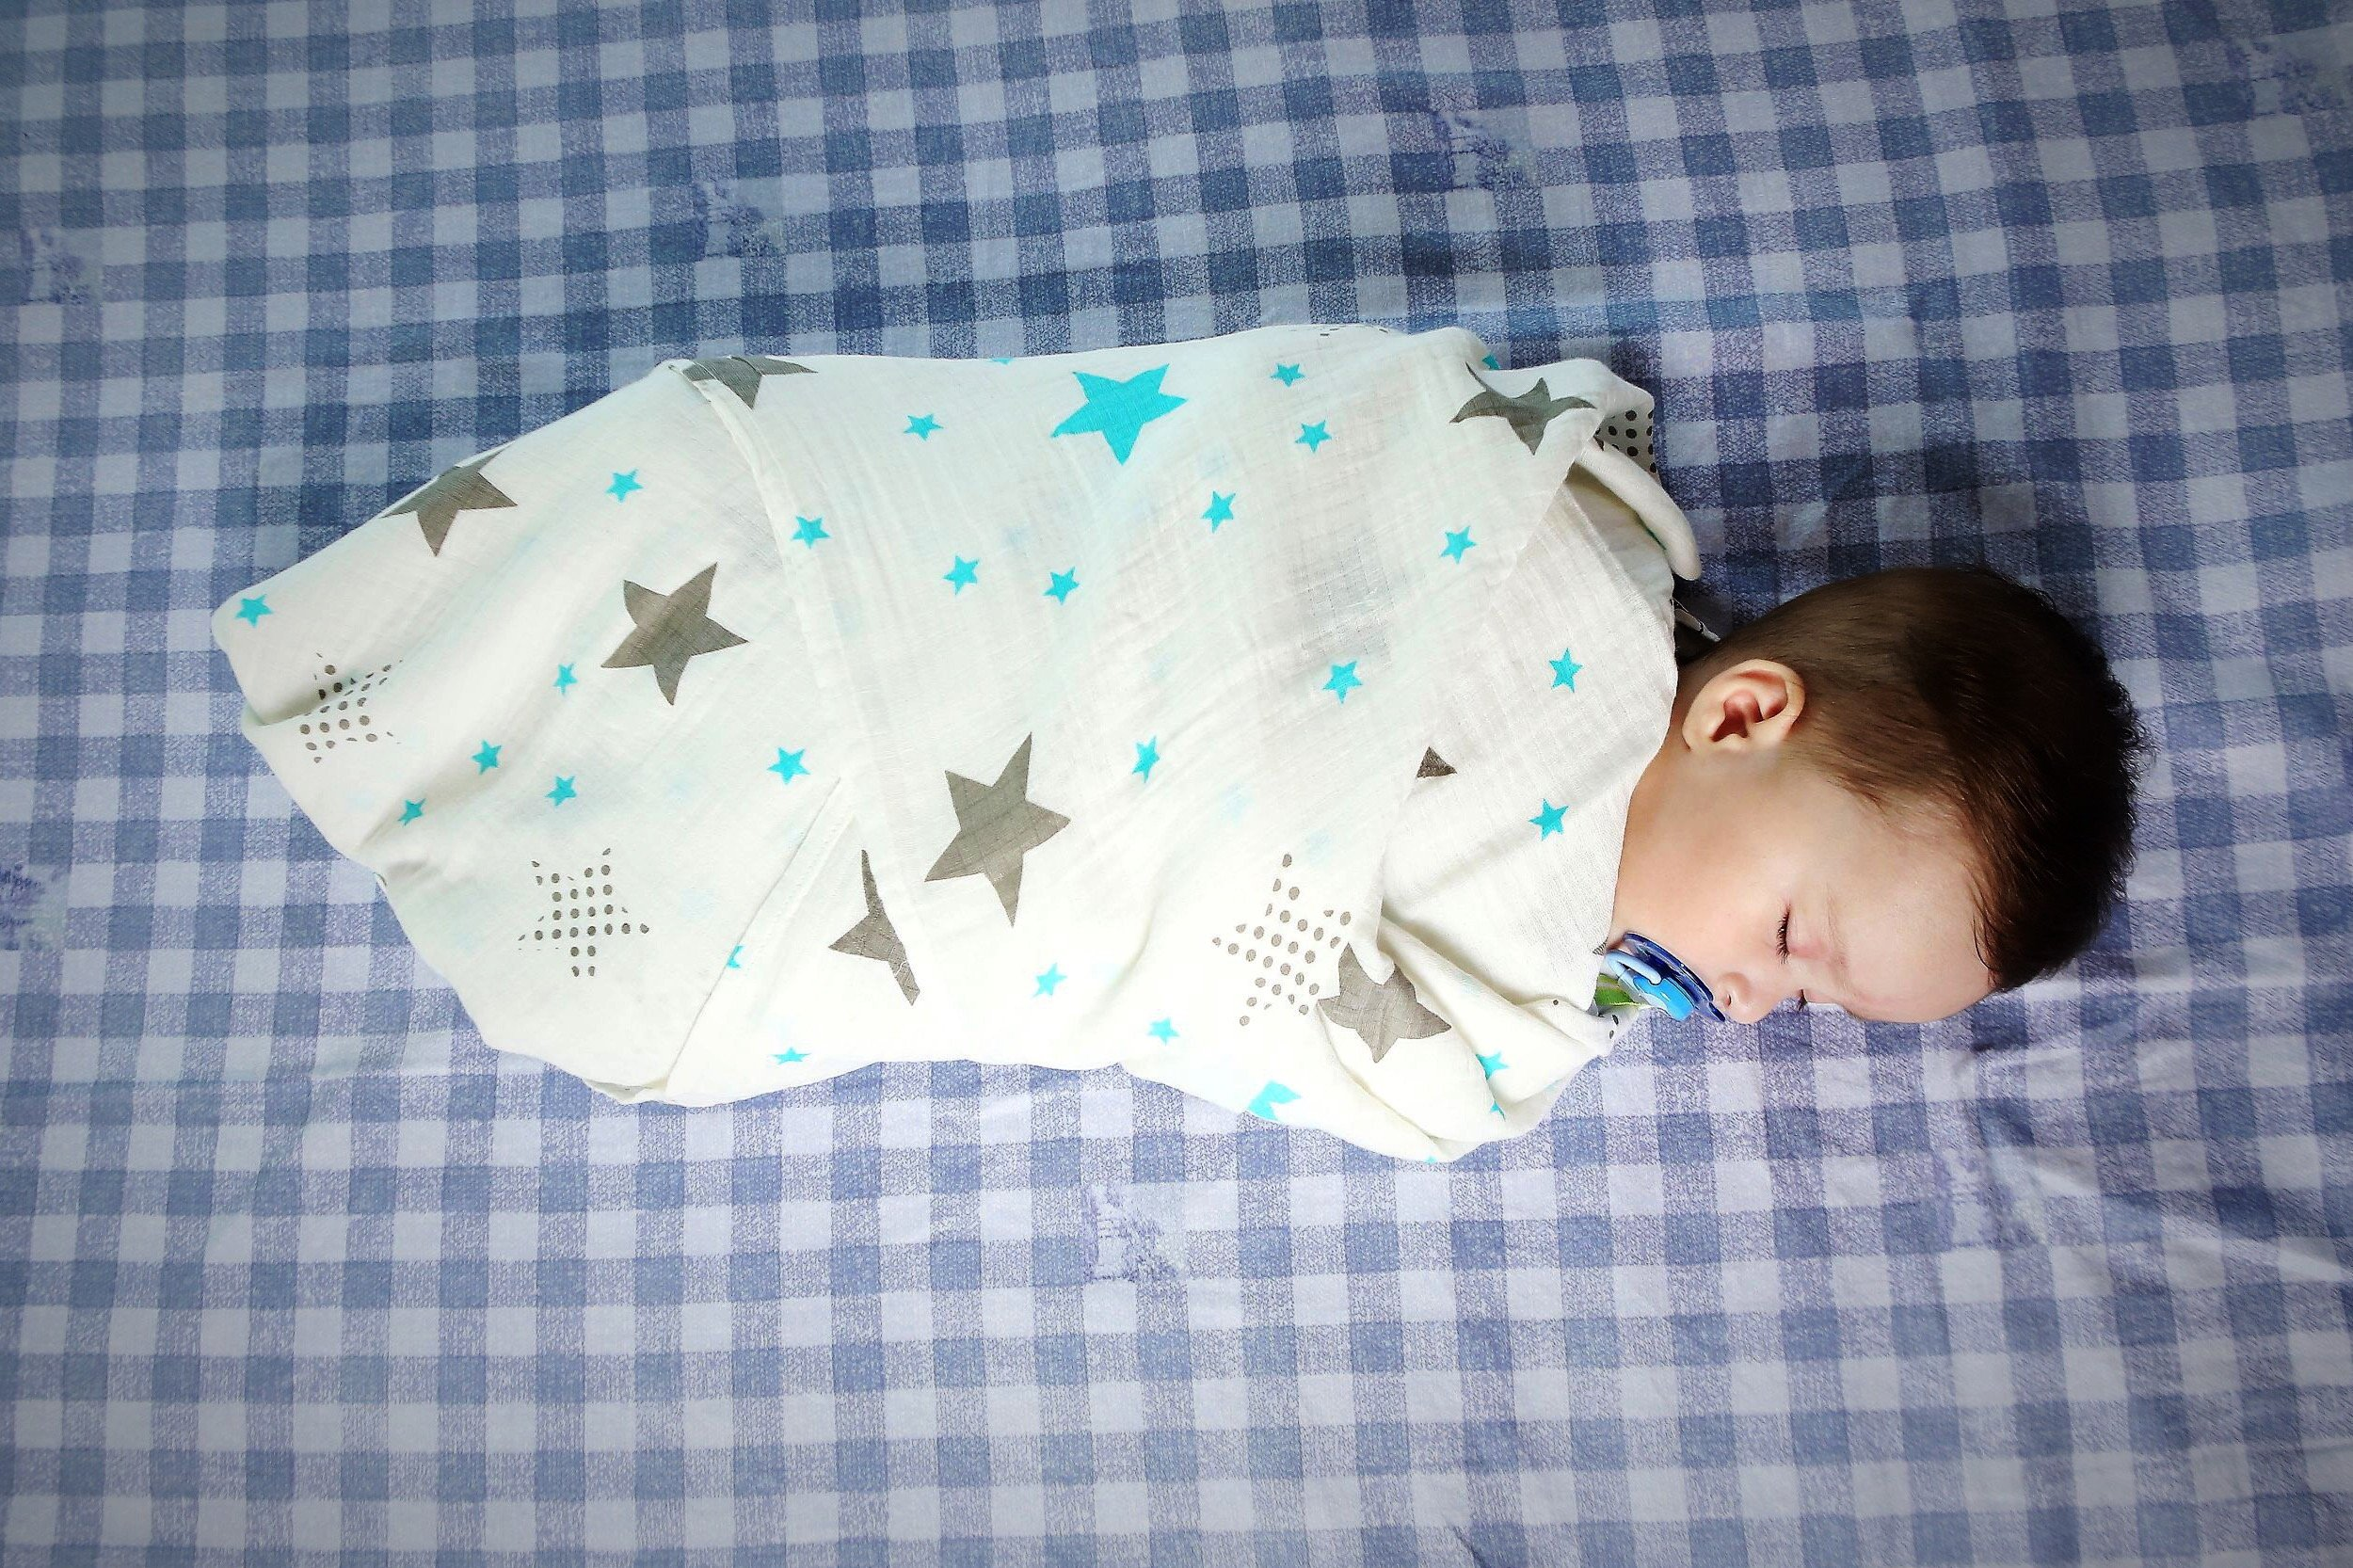 Muslin Swaddle Blankets - 100% Organic Cotton - 3 Pack 47'' x 47'' Ultrasoft and Hypoallergenic - Best Baby Shower Gift (Blue and Grey) by Green Wood (Image #3)